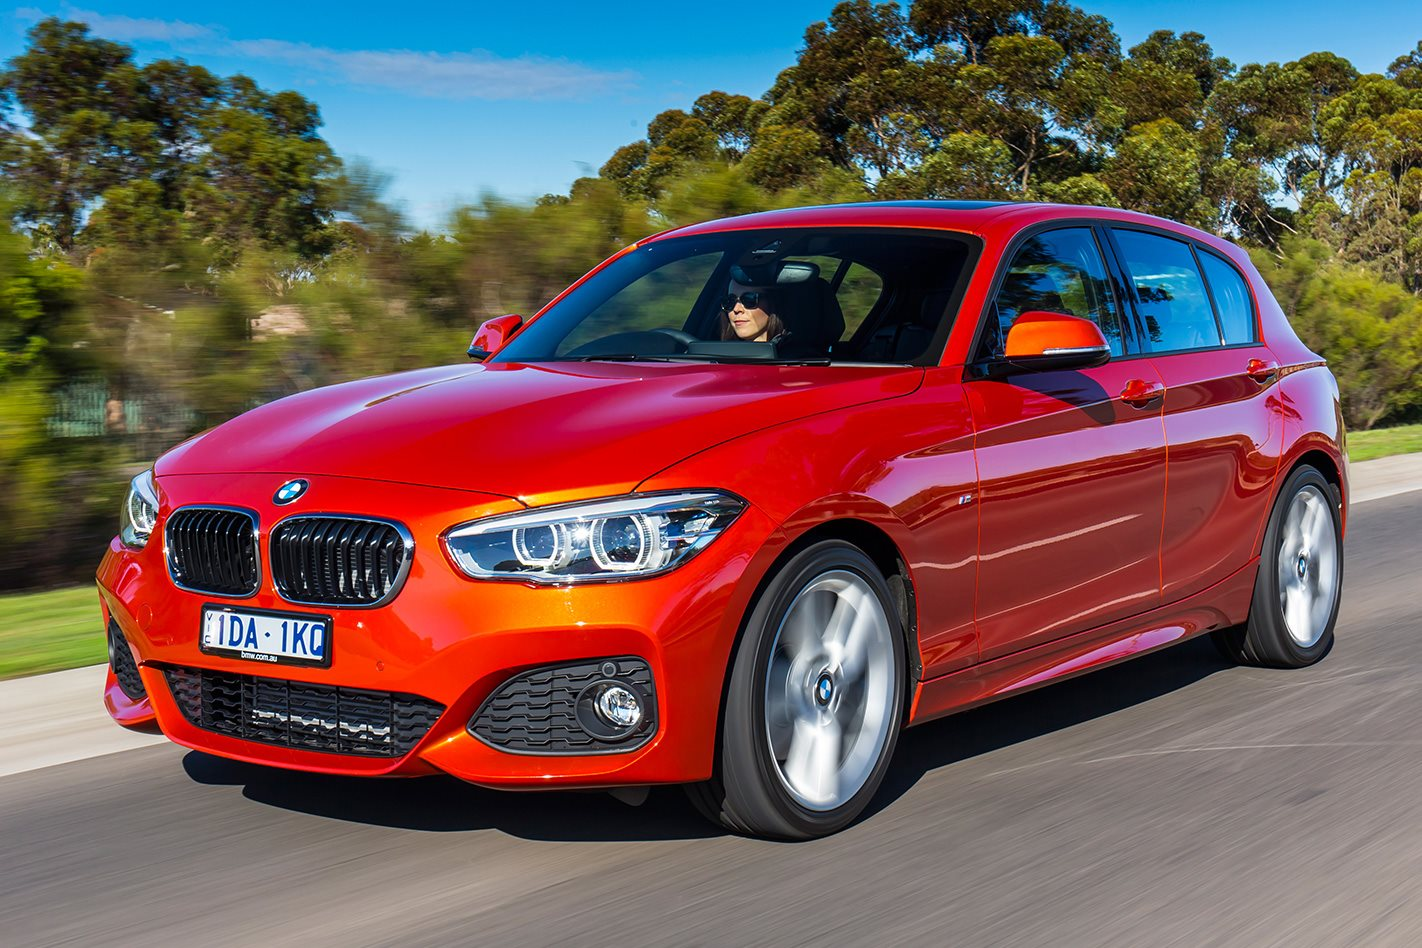 2015 bmw 1 series first drive review. Black Bedroom Furniture Sets. Home Design Ideas